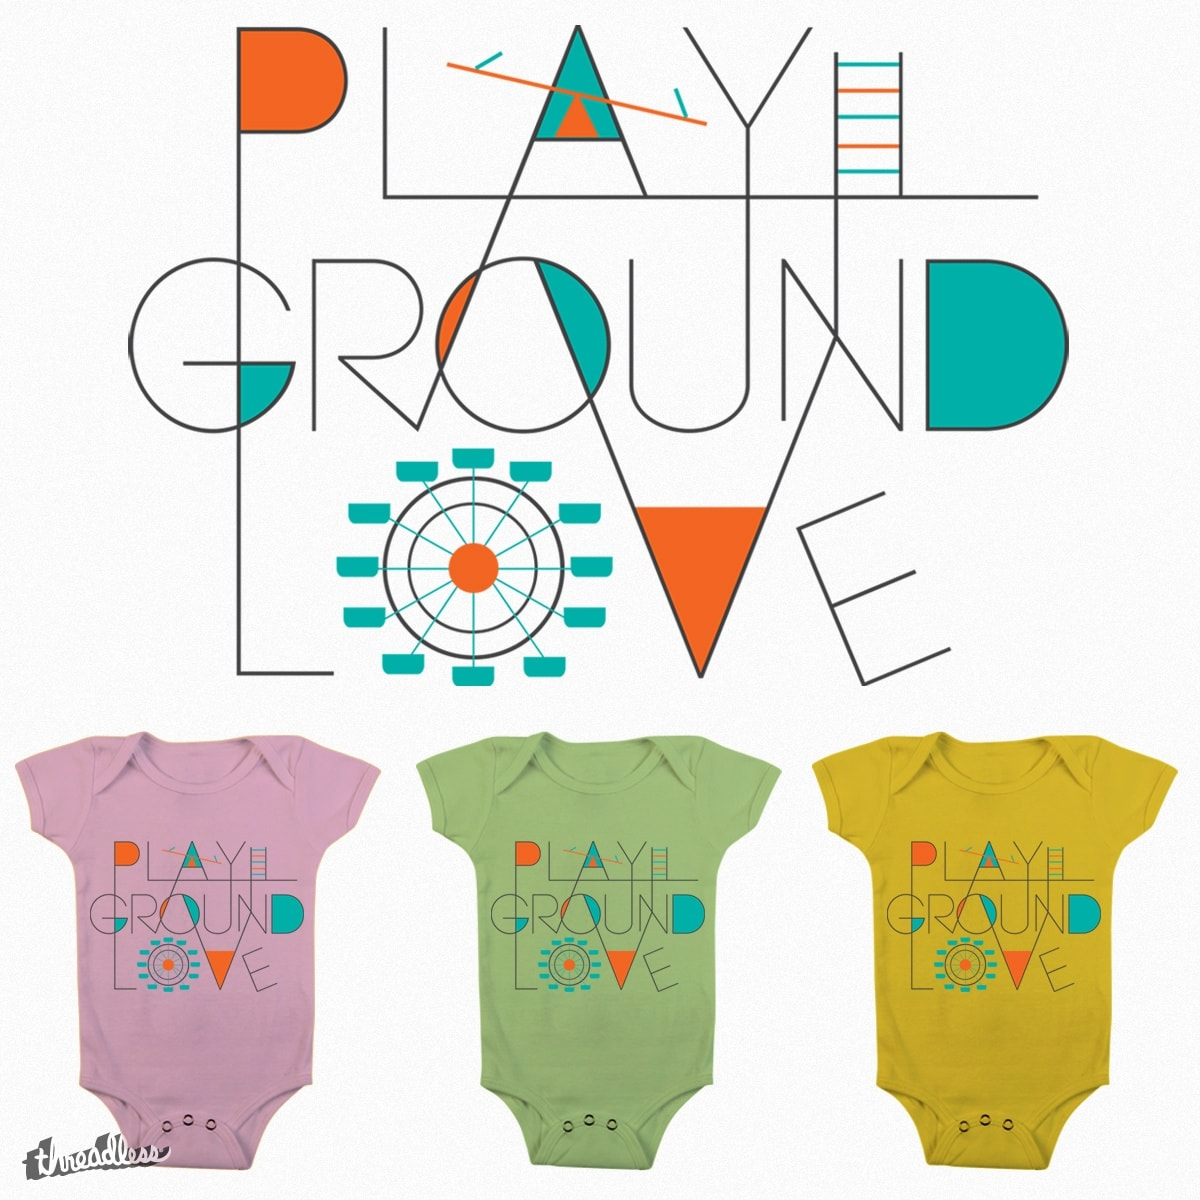 PLAYGROUND LOVE by artified on Threadless